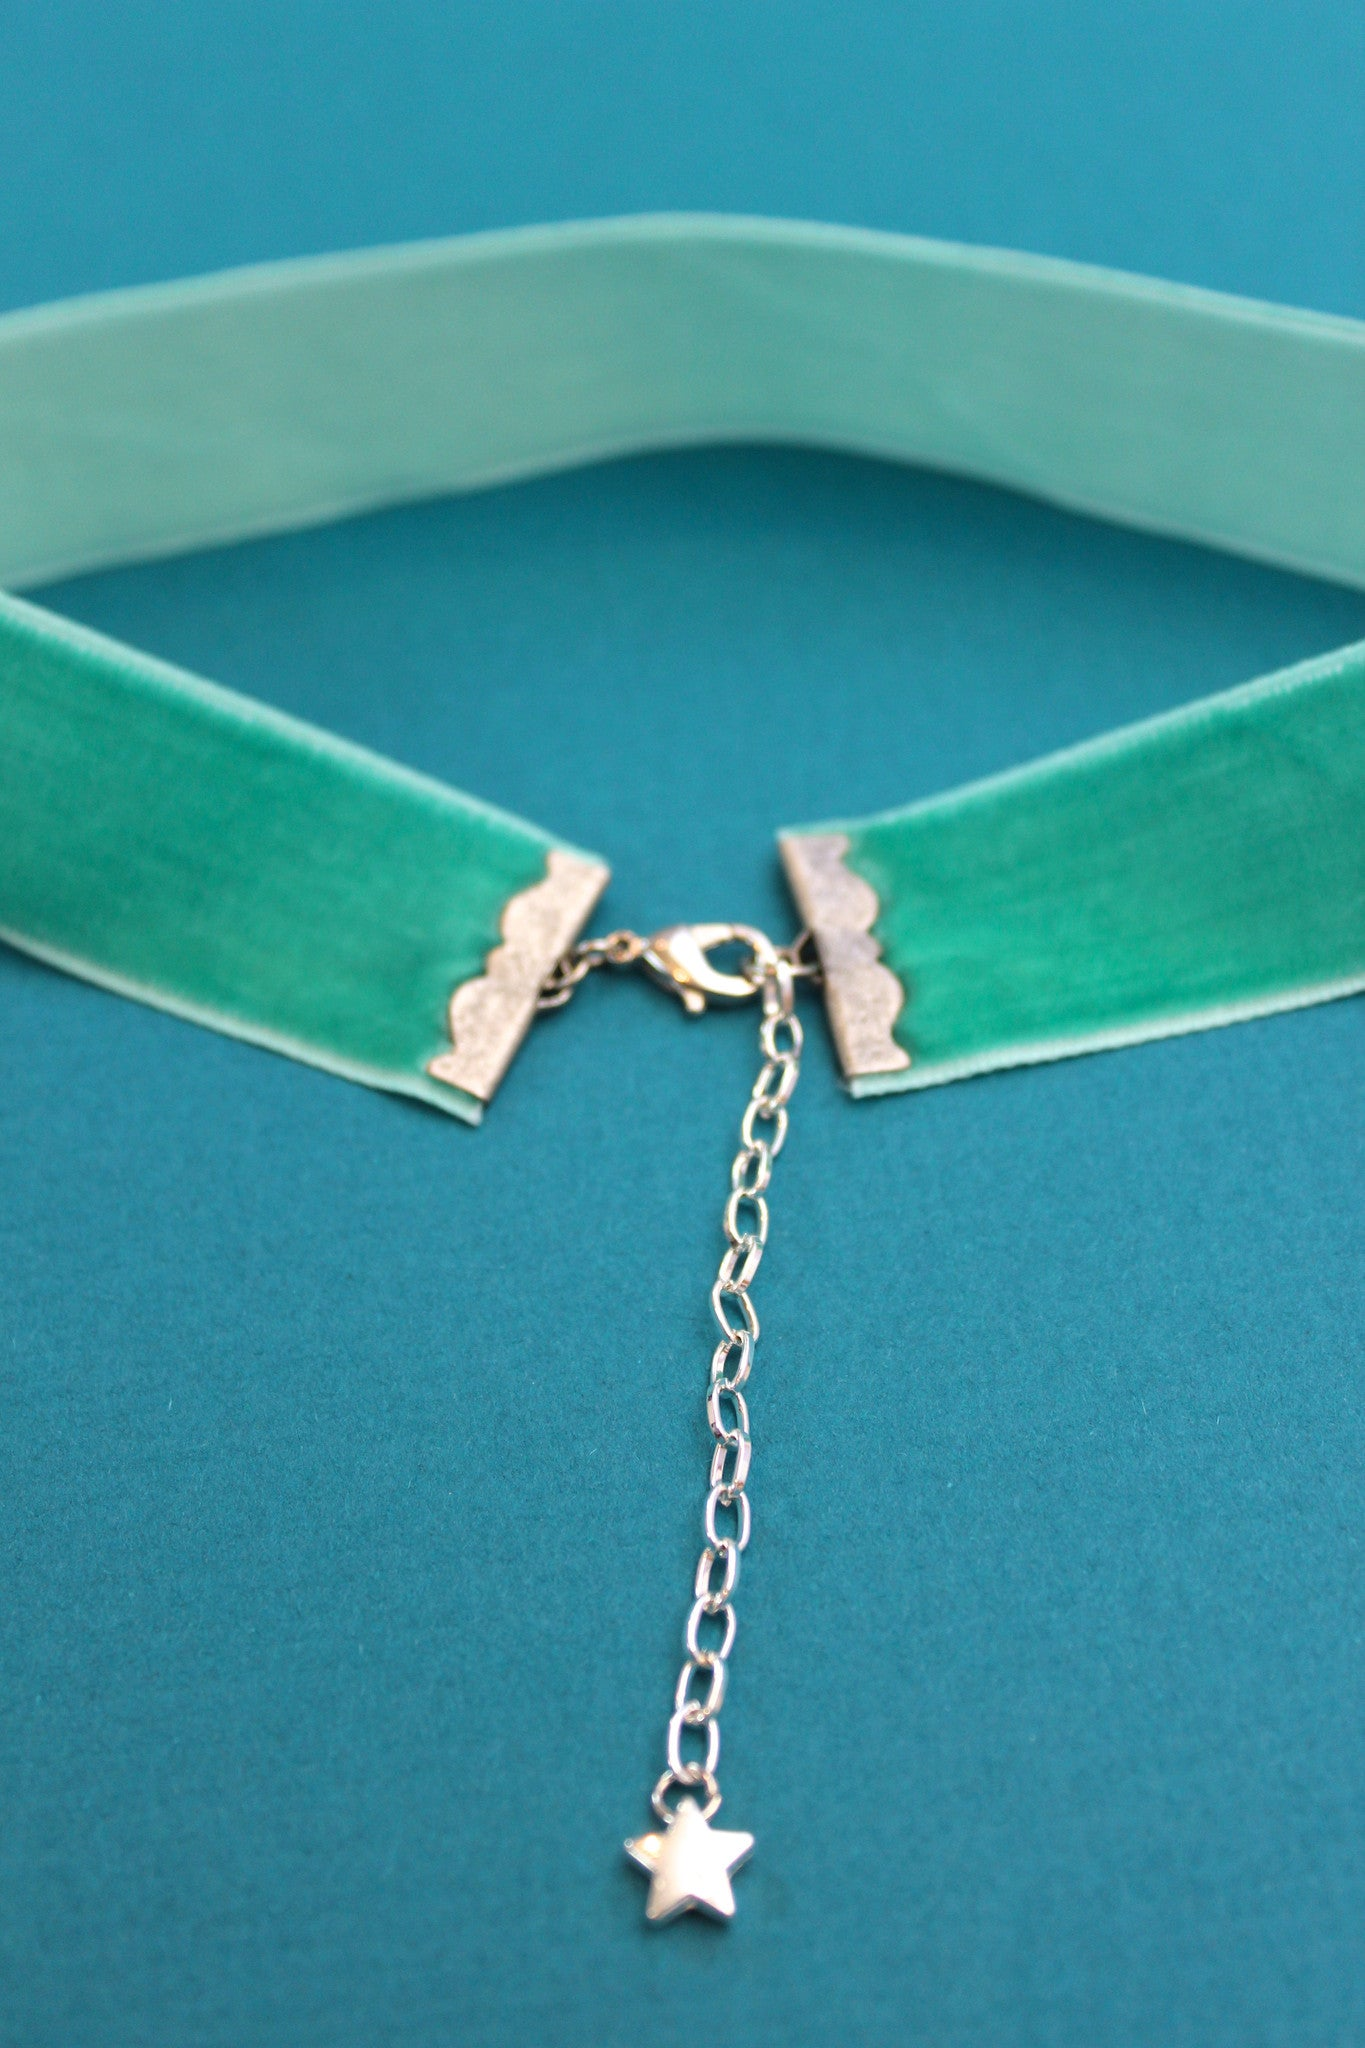 Seafoam Green Velvet Choker Necklace